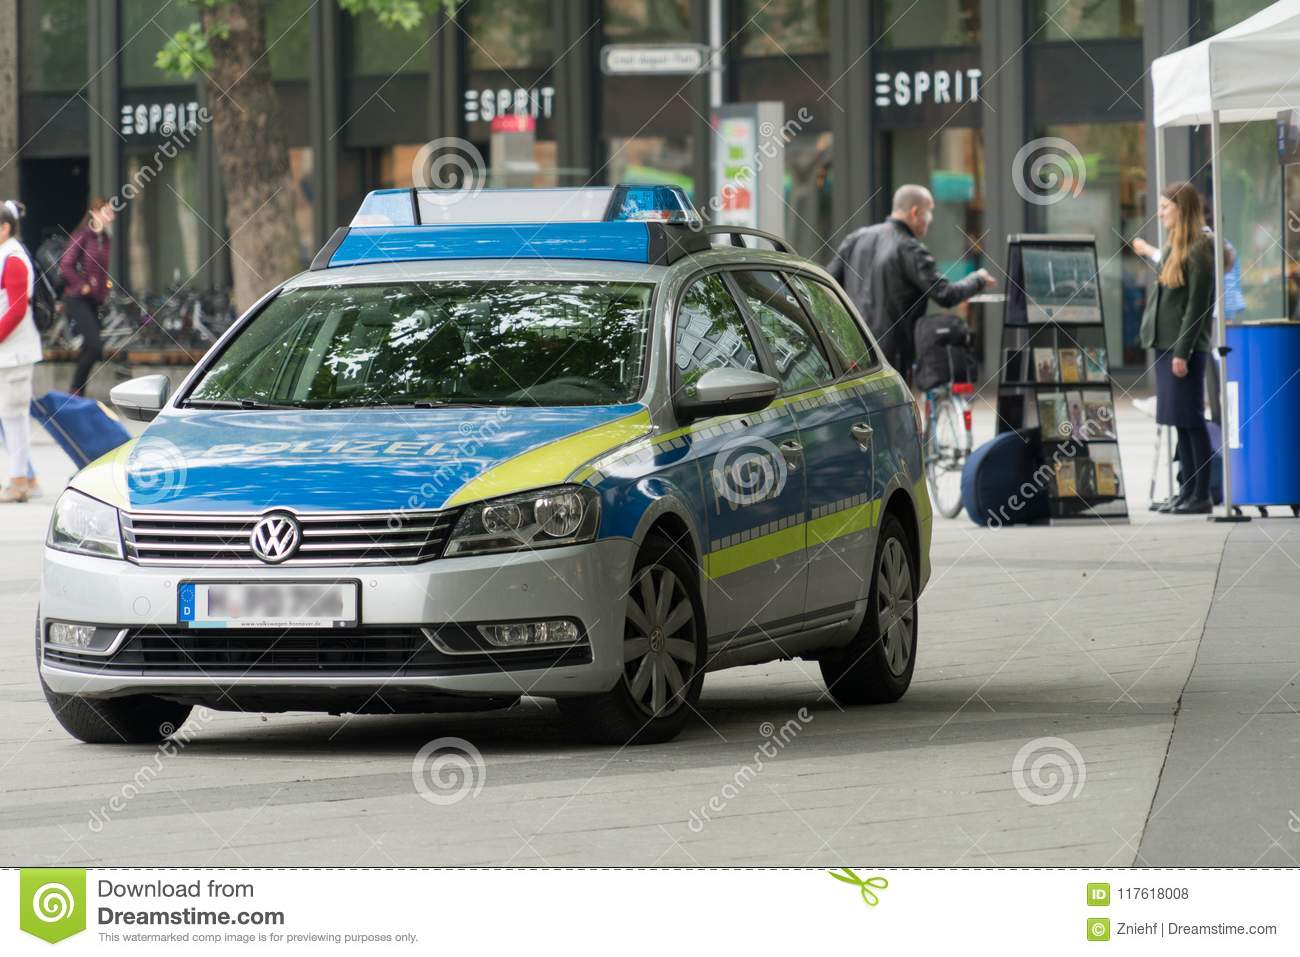 Hanover, Lower Saxony, Germany, May 19, 2018: Police Car Standing On